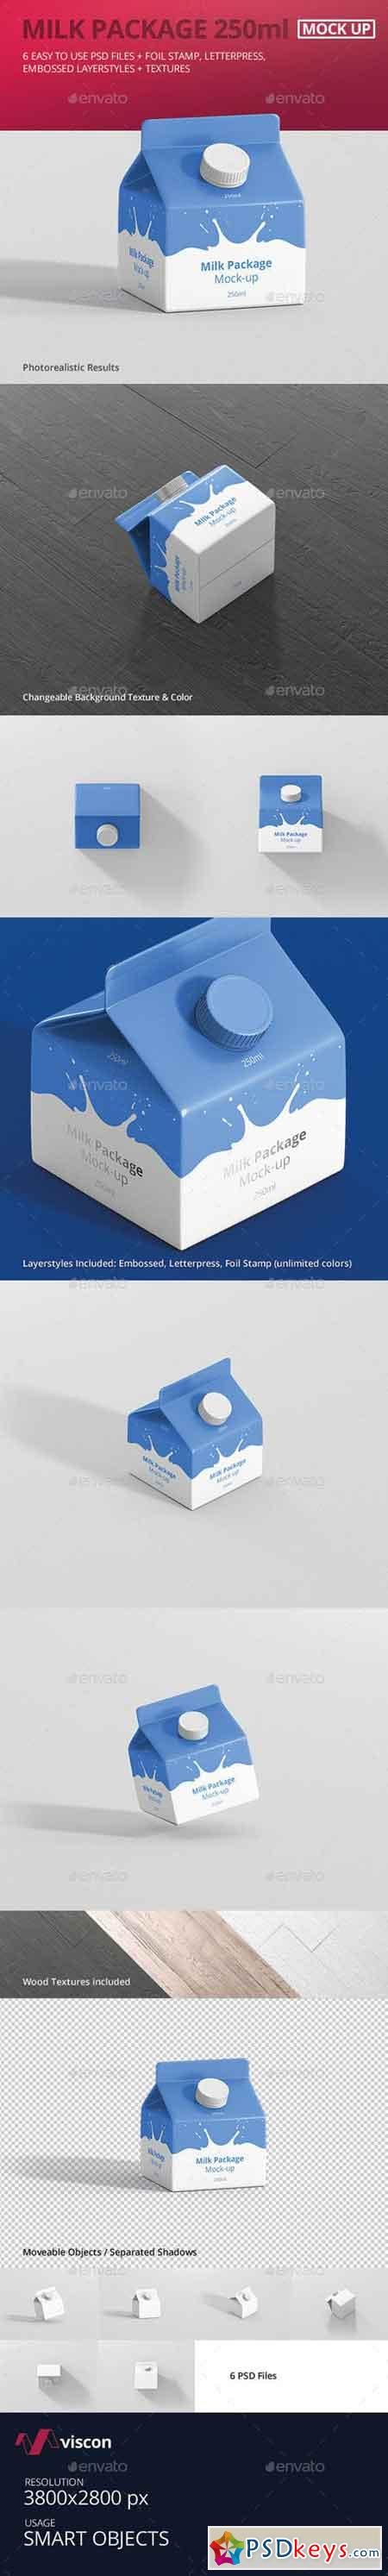 Juice Milk Mockup - 250ml Carton Box 18191218